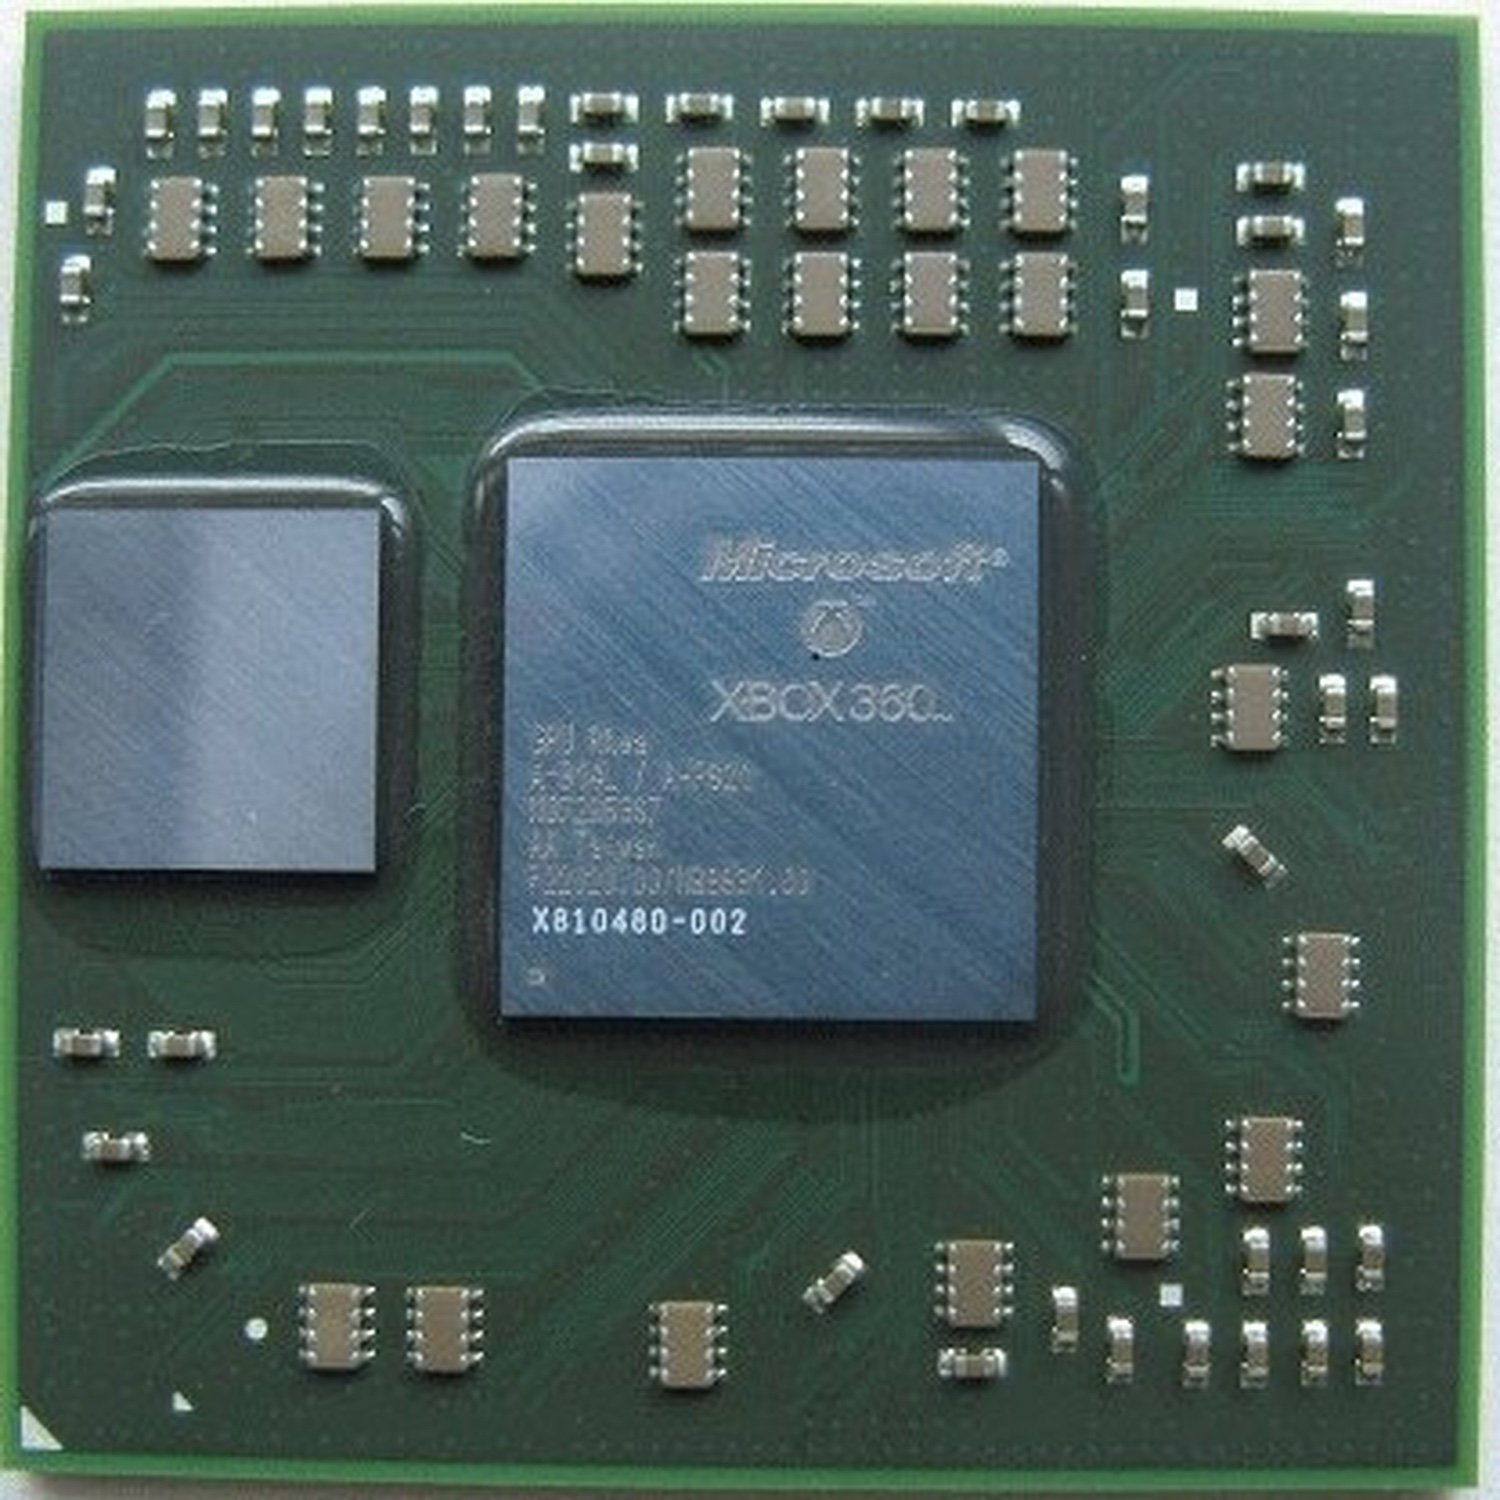 Xbox360 65nm gpu X810480 (refurbished & attached to board) m90p motherboard systemboard 71y5975 refurbished